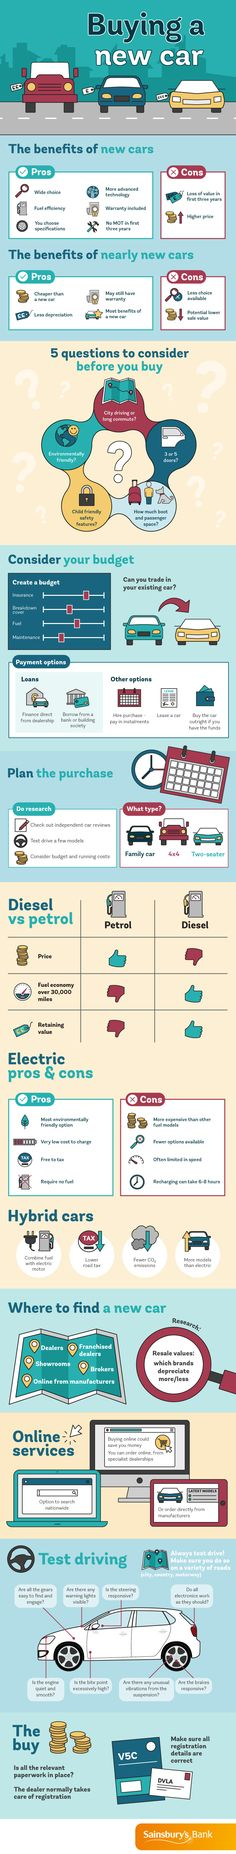 Buying a New Car #infographic #Cars #Transportation